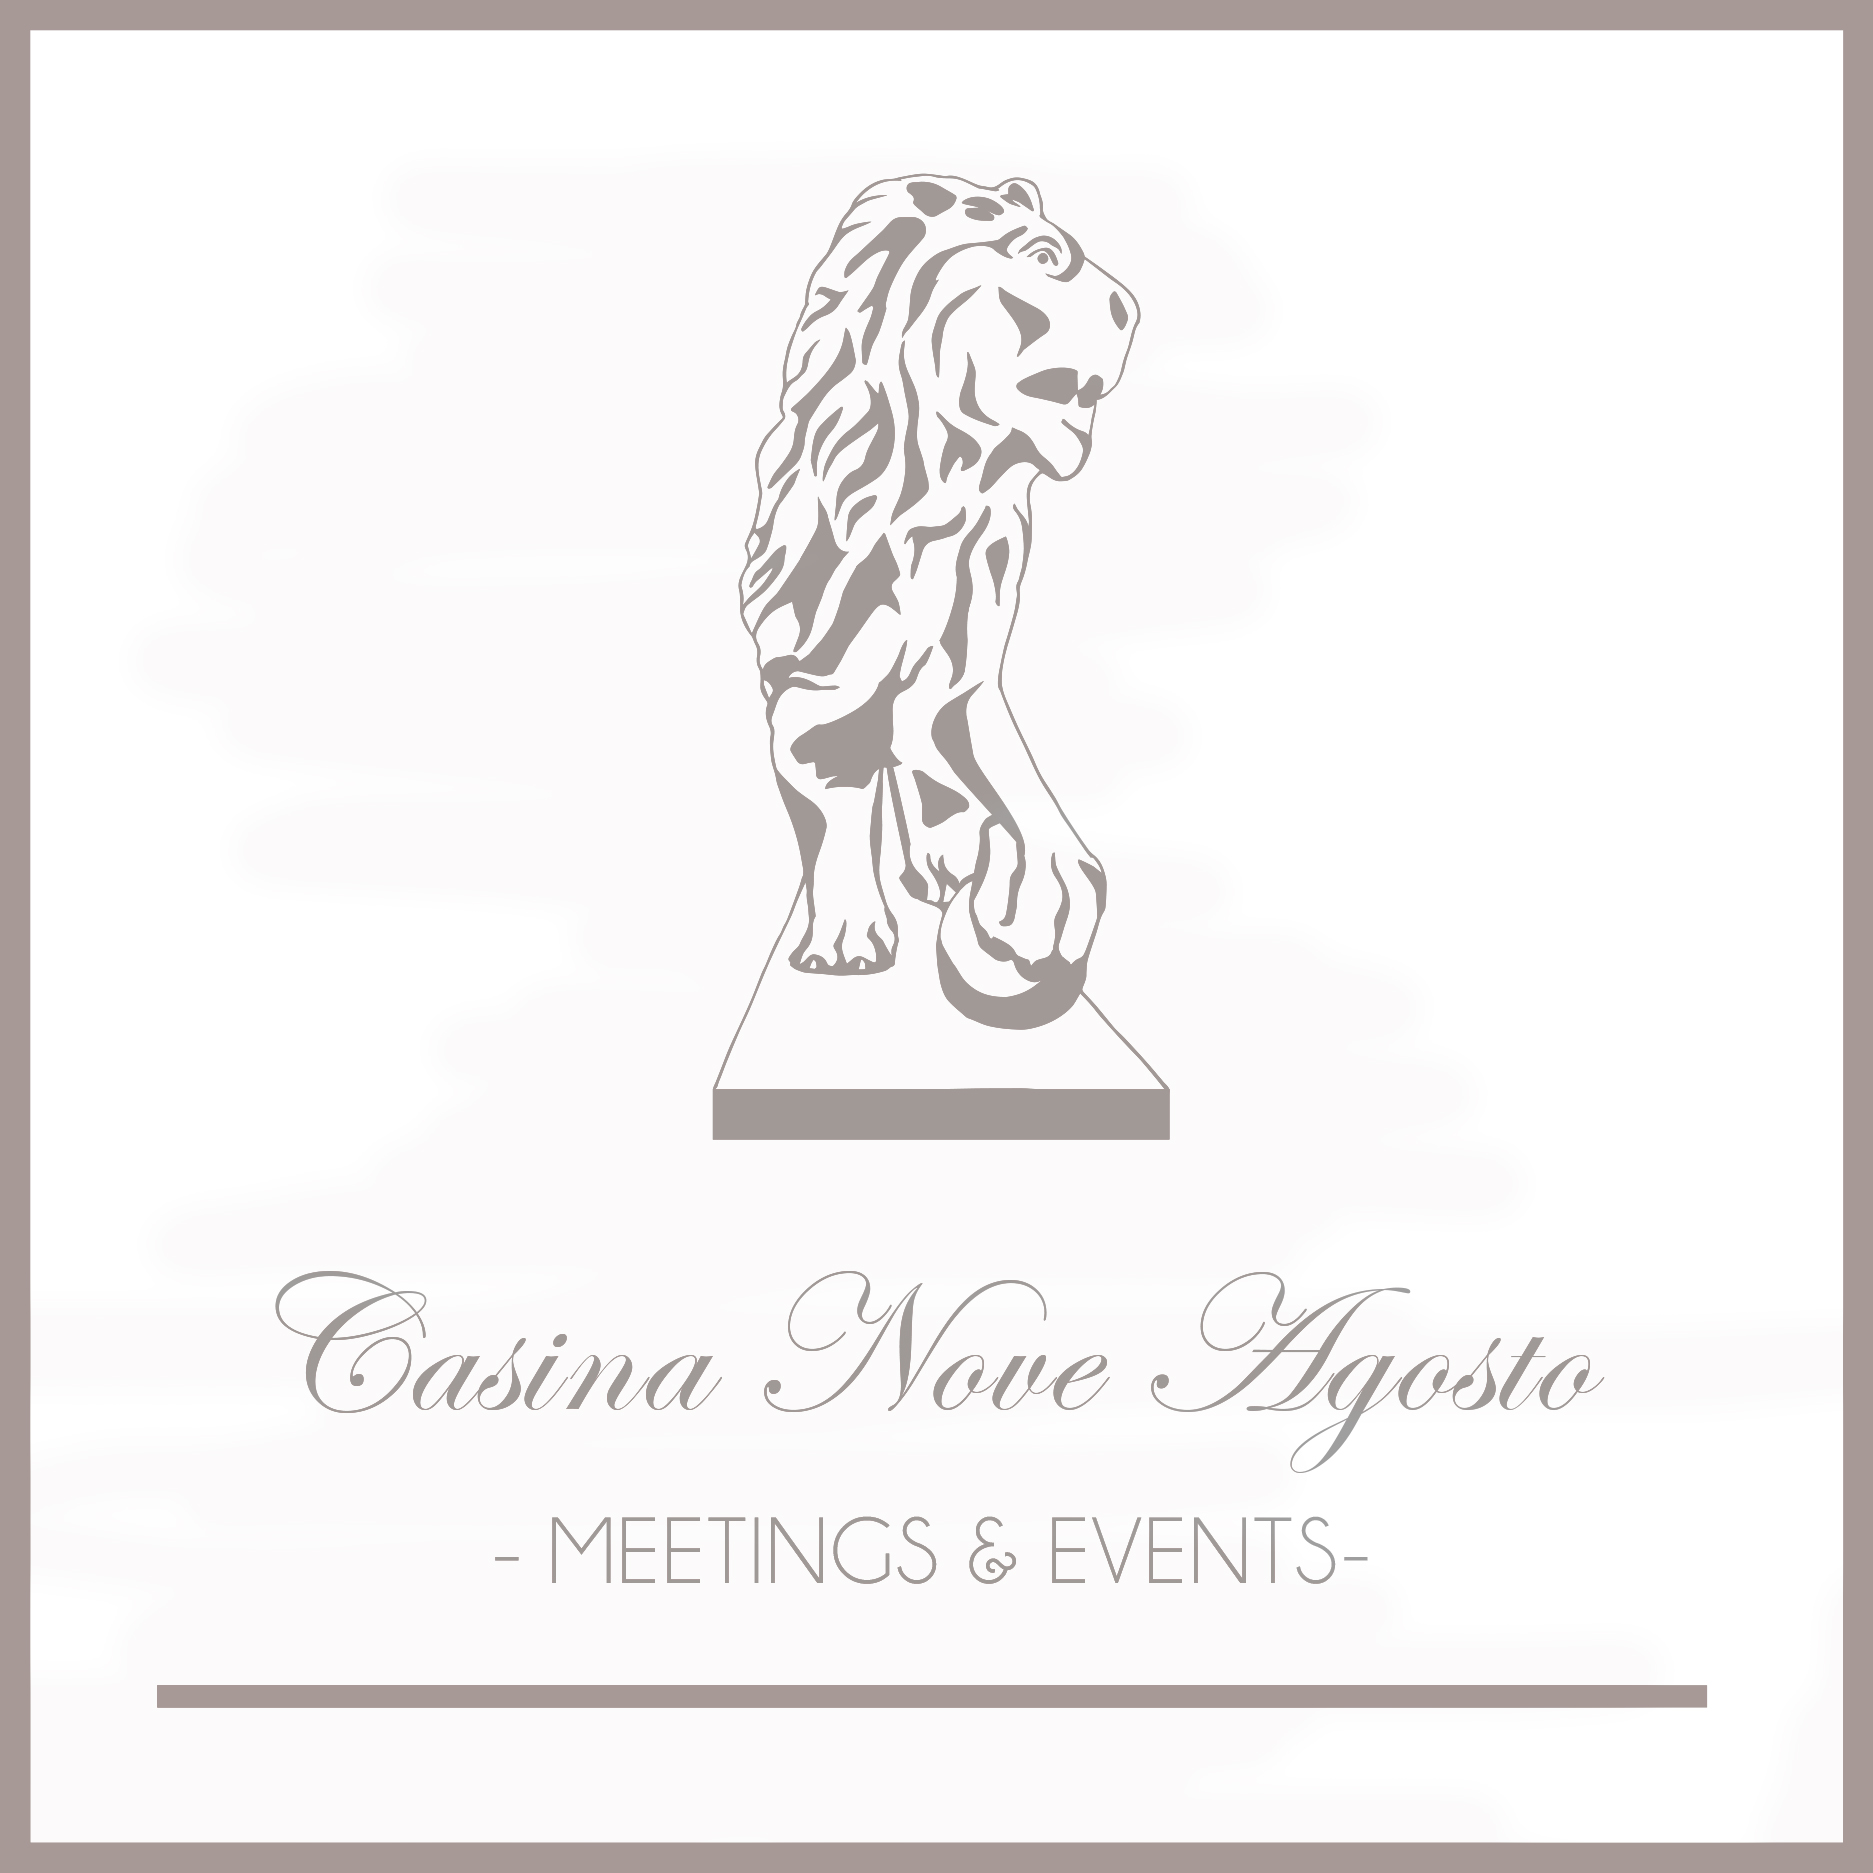 Casina Nove Agosto – Eventi, meeting, sport